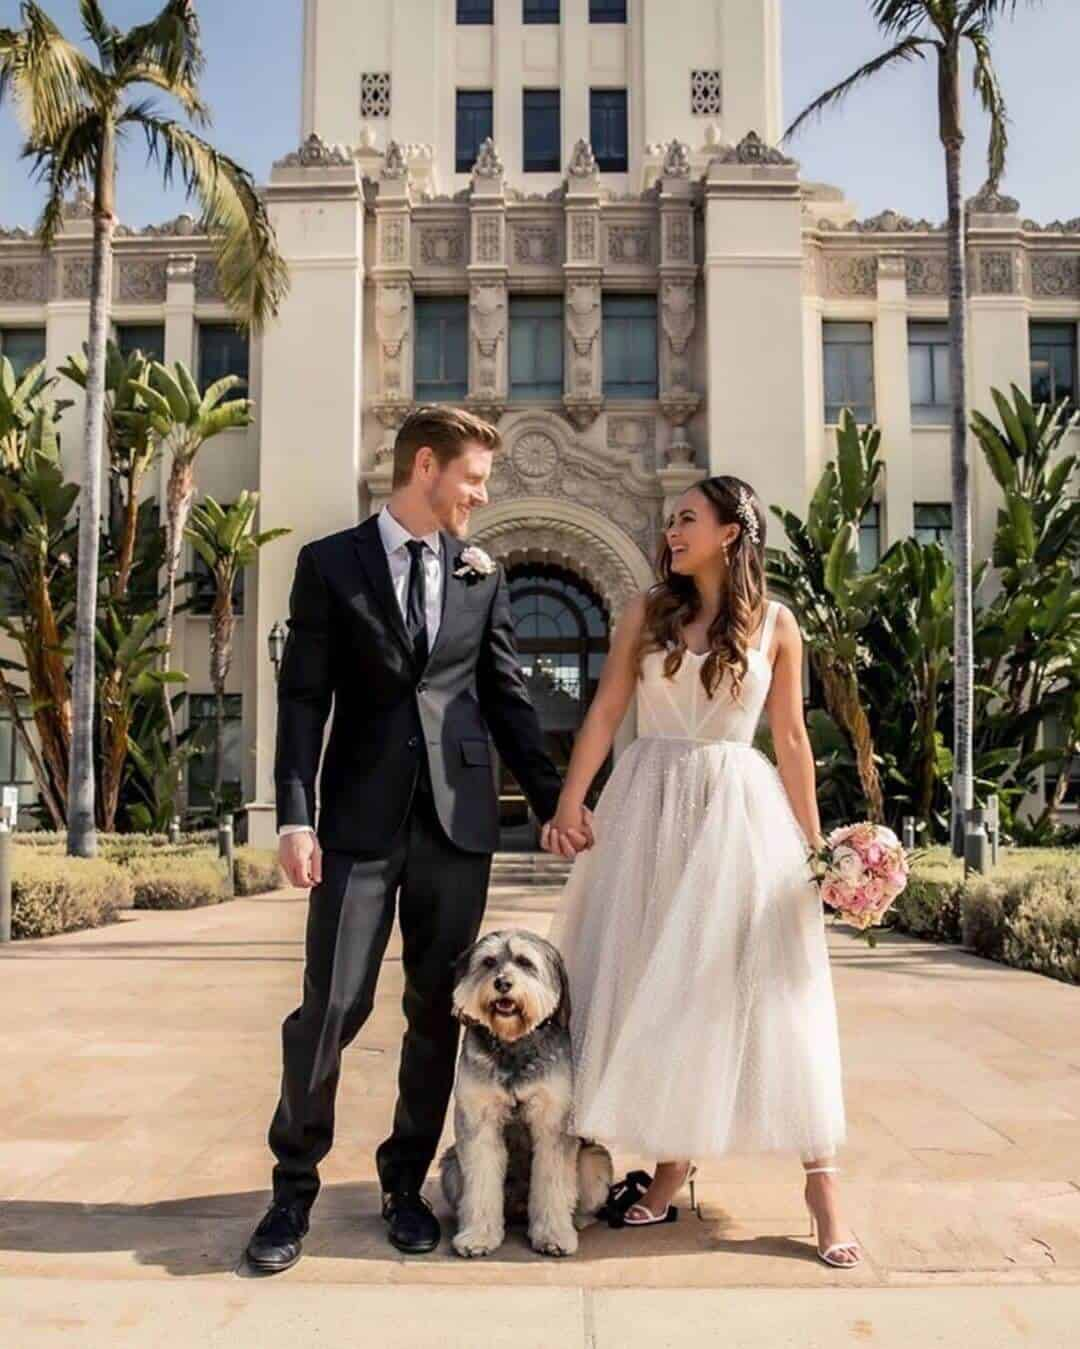 Wedding with Puppies Cute Wedding Puppy Beverly Hills Courthouse Melanee Shale Wolfgang (1)